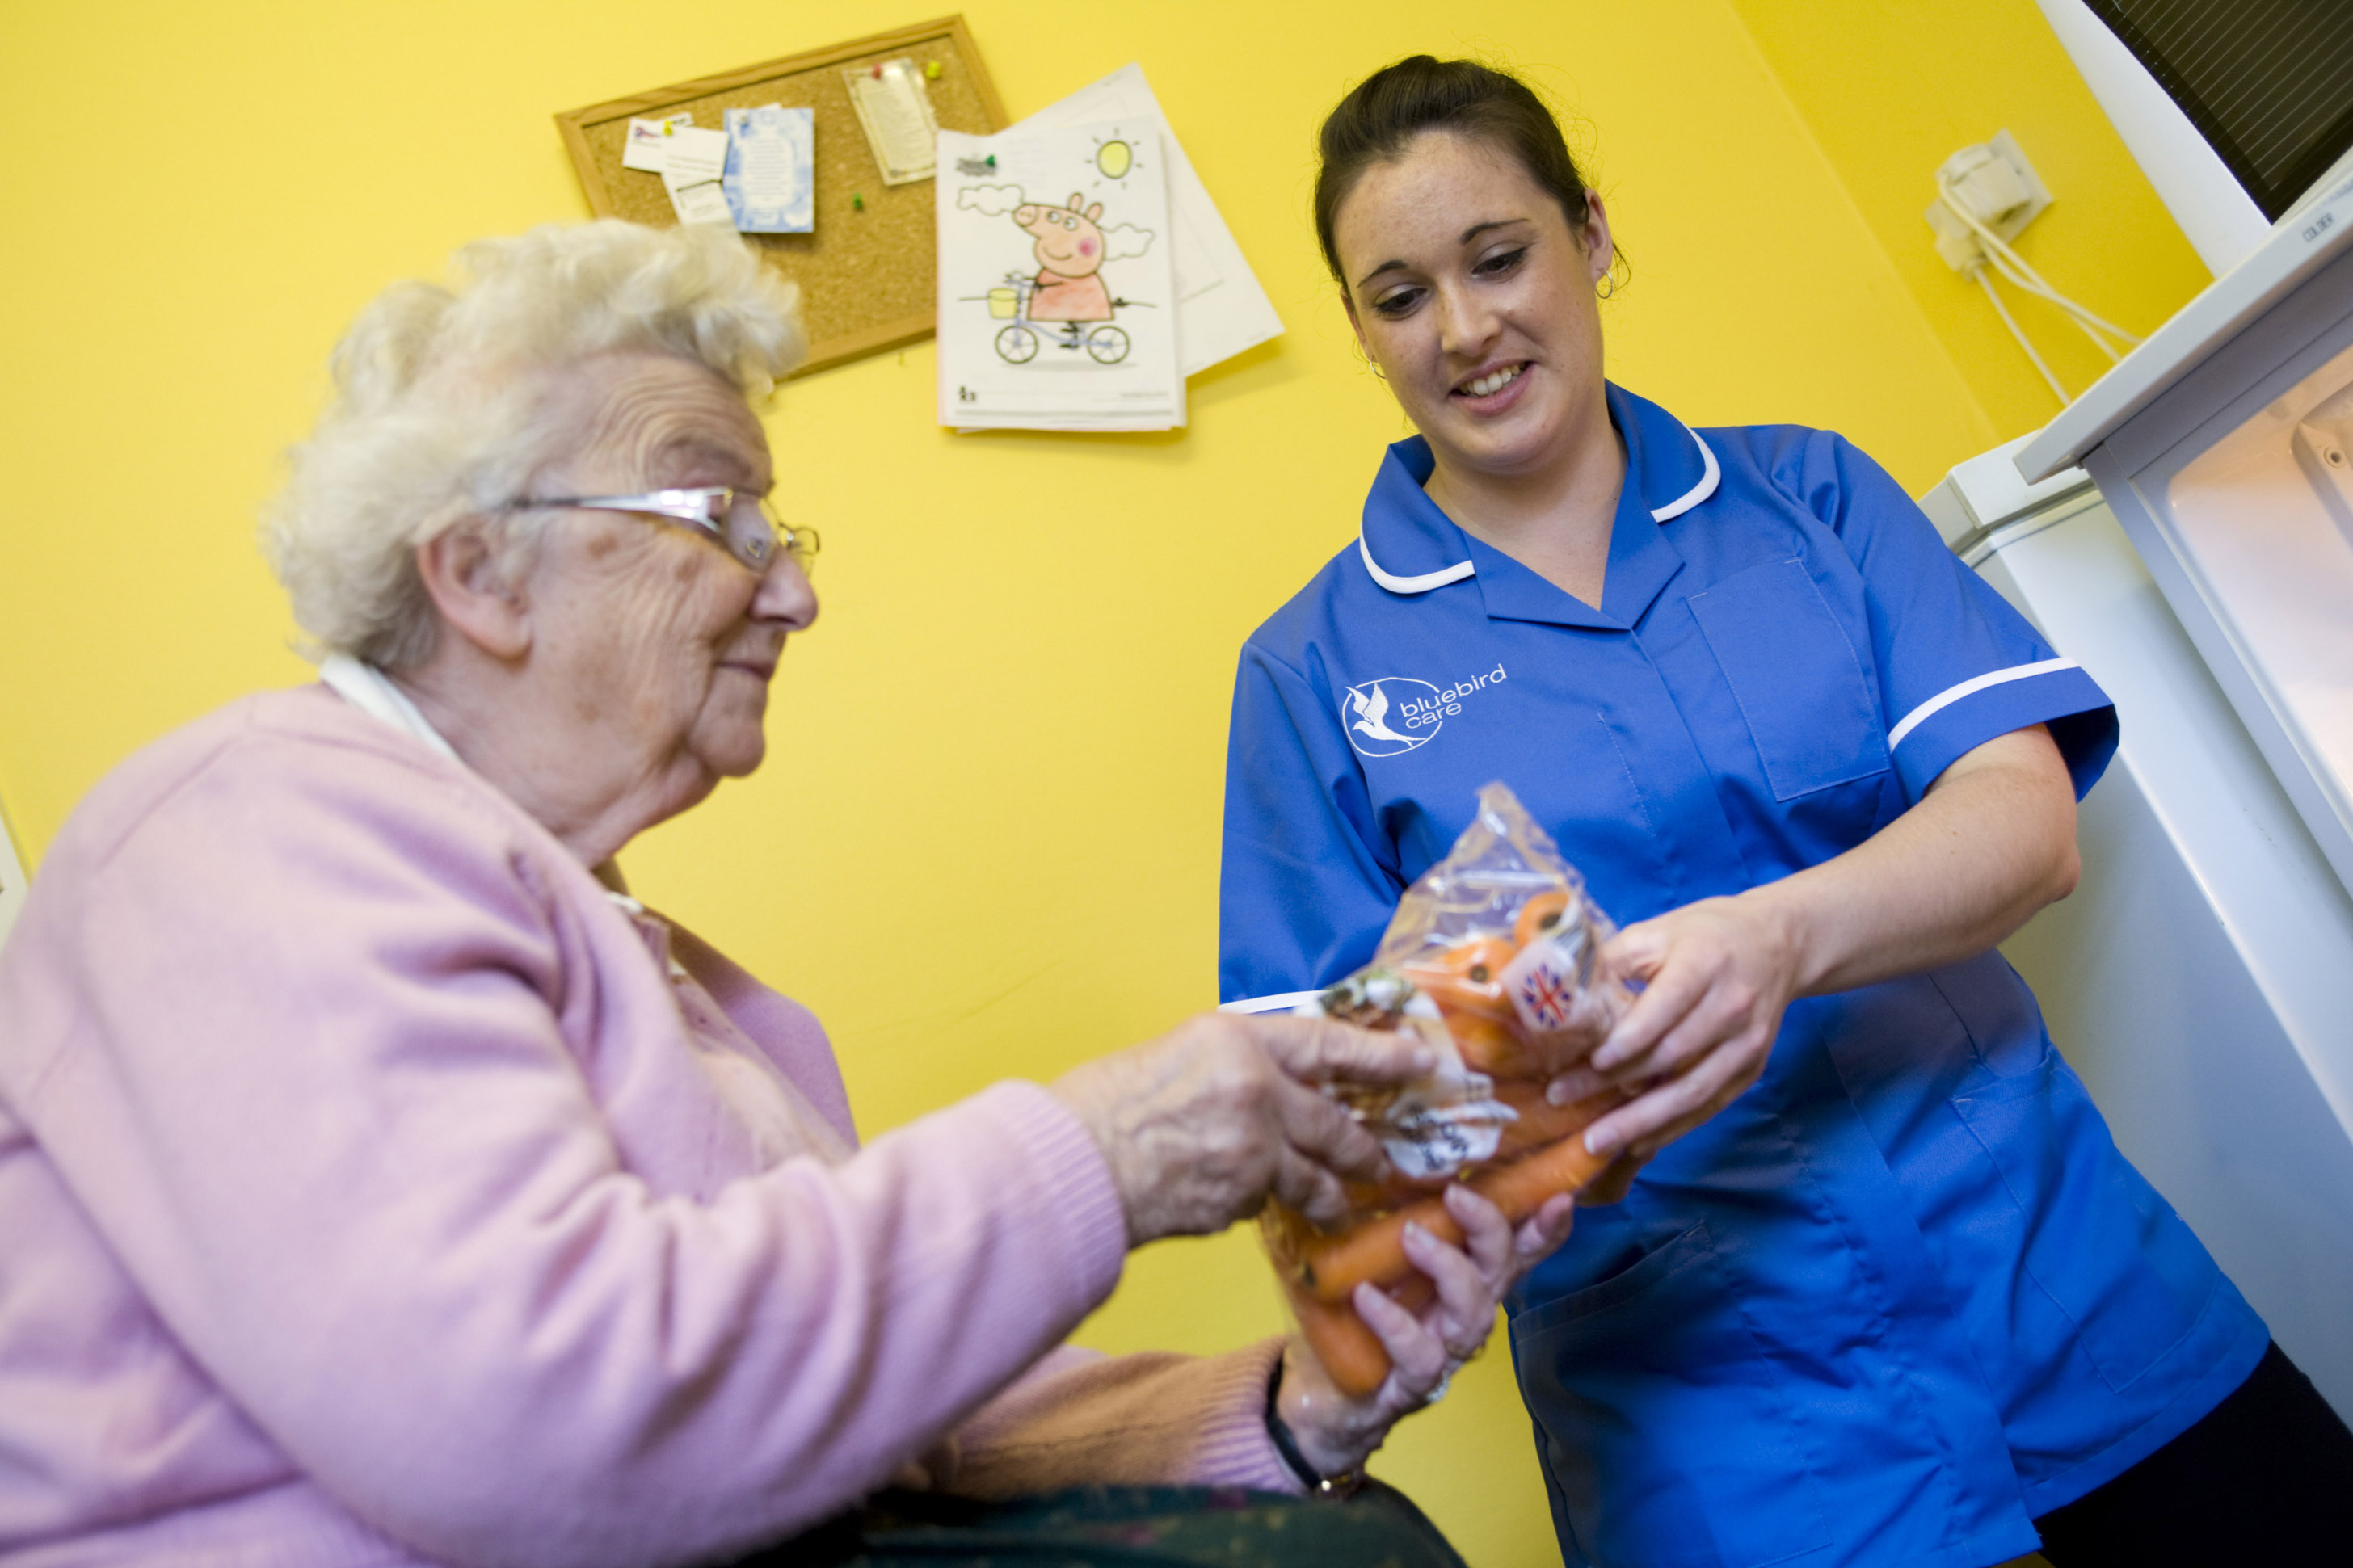 Home care, carer helping put shopping away